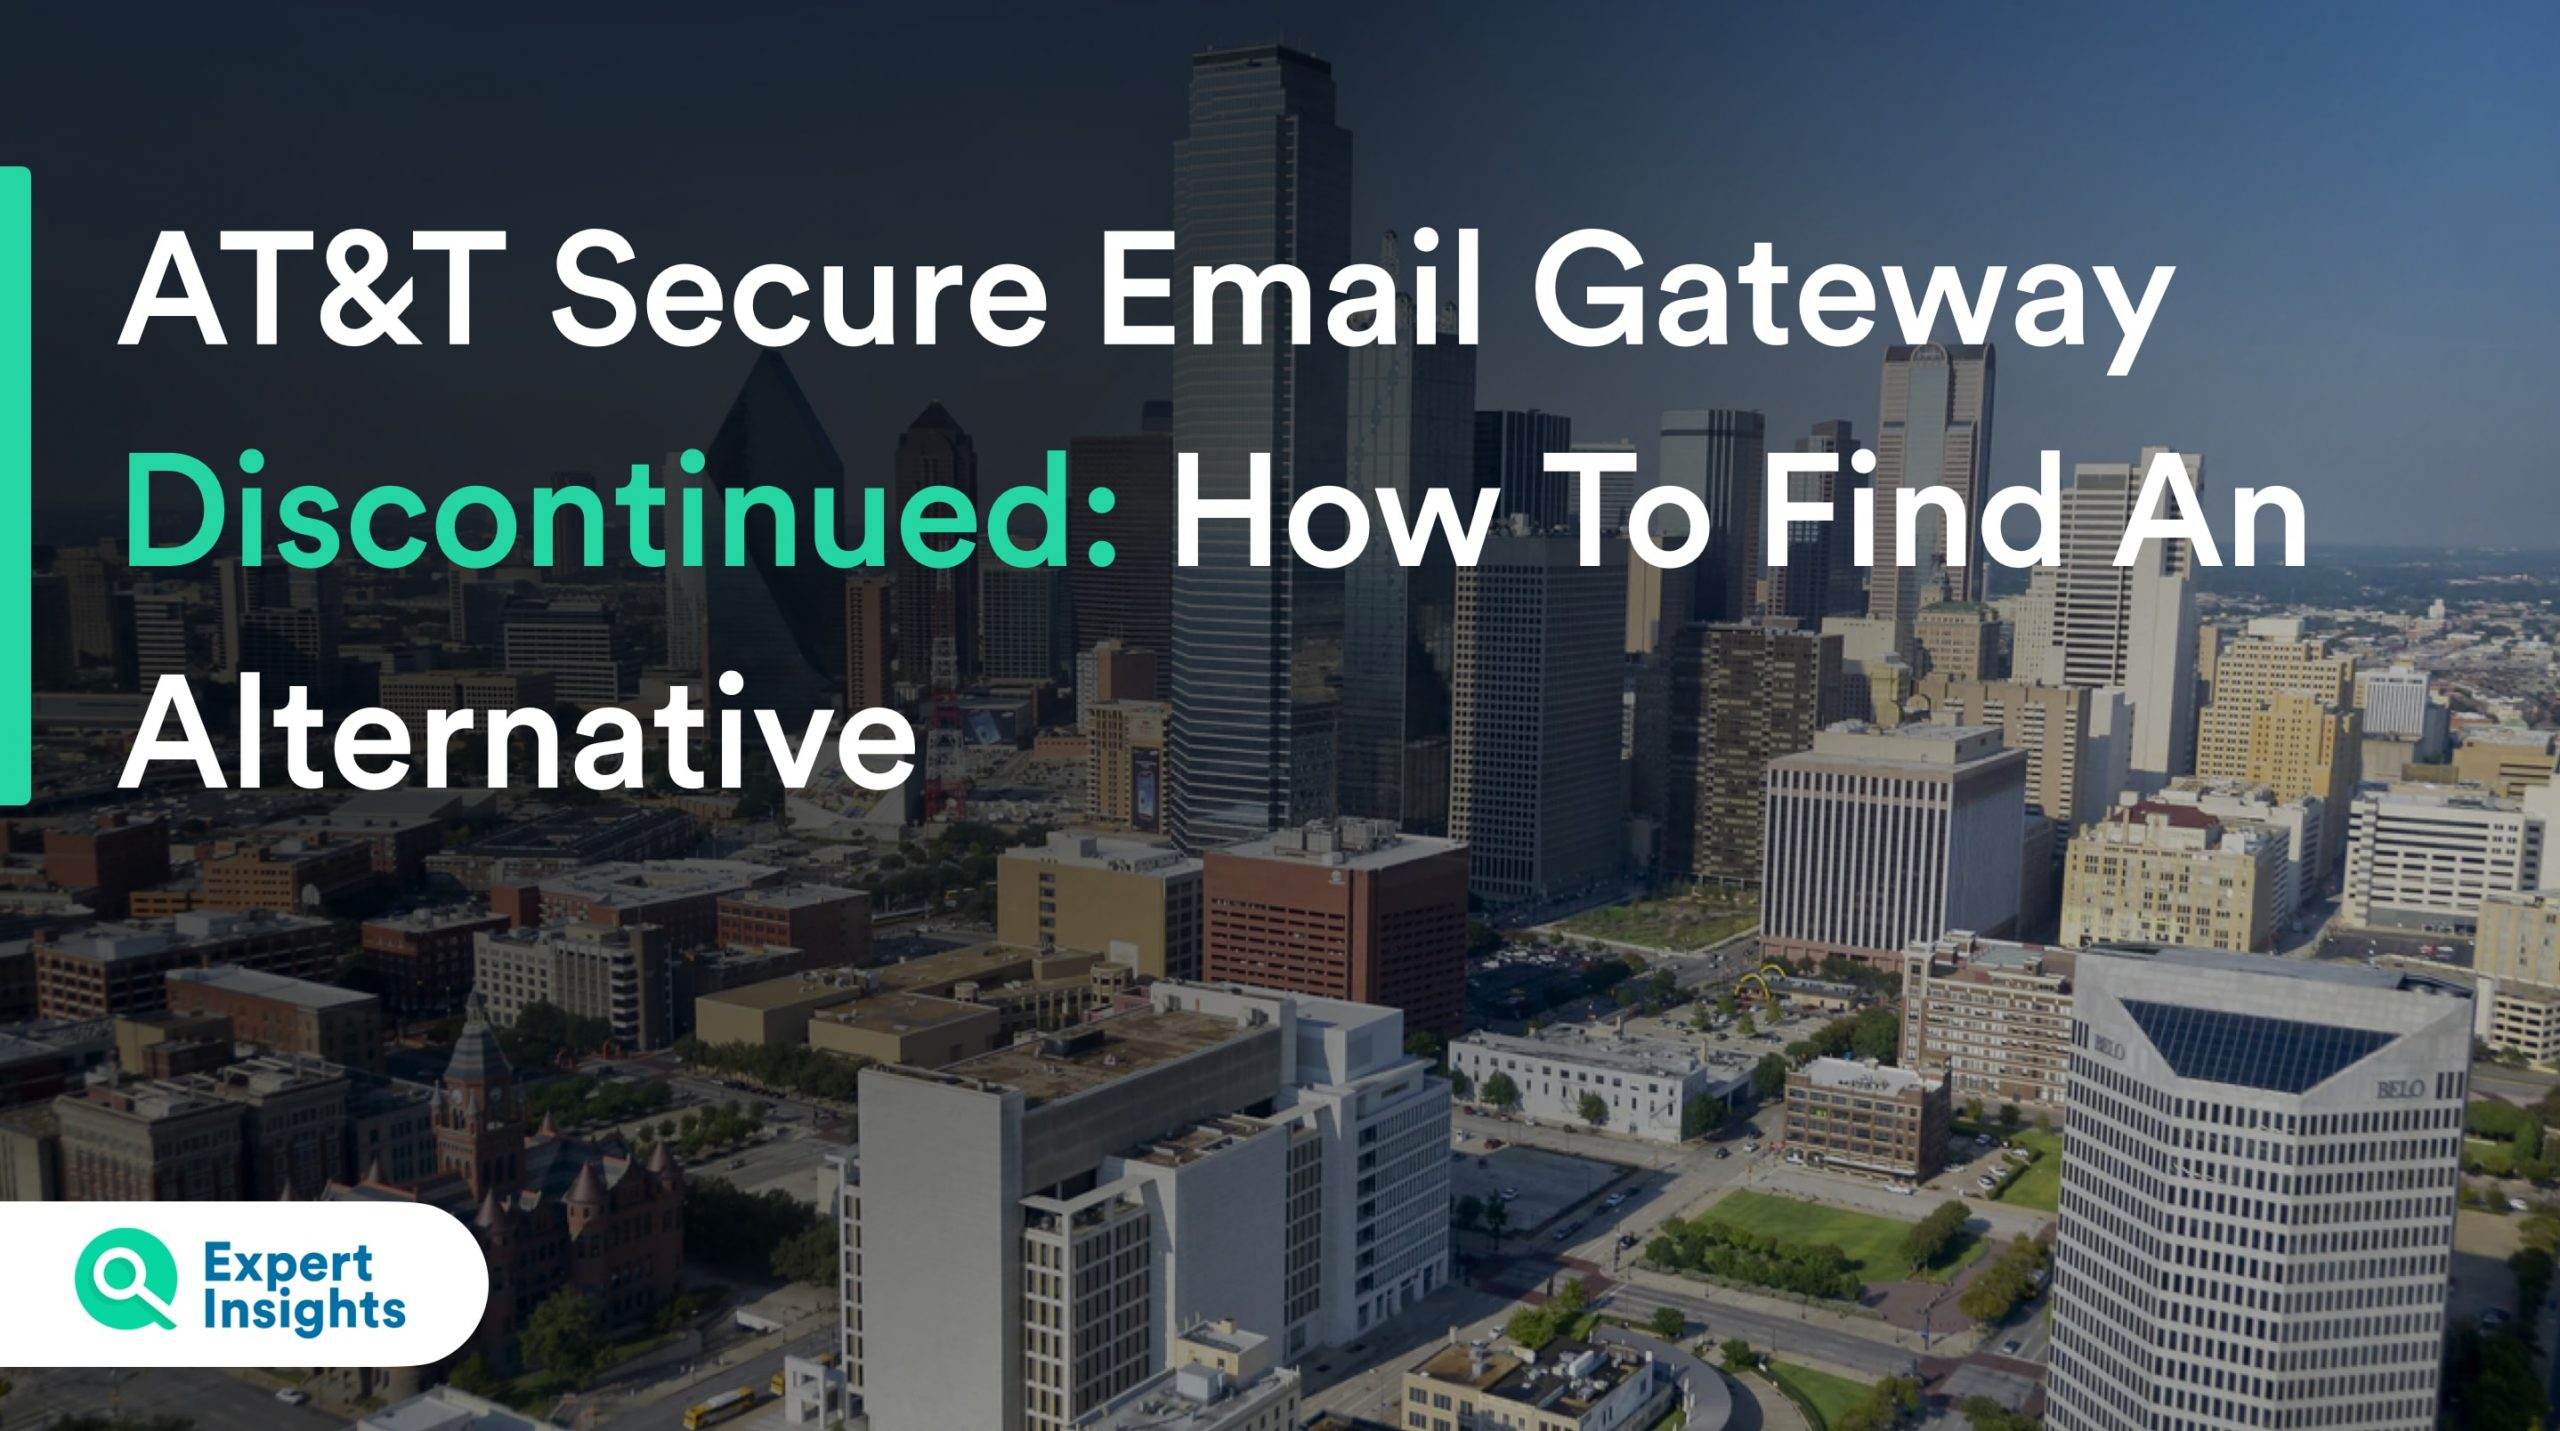 AT&T Secure Email Gateway Discontinued: How To Find An Alternative